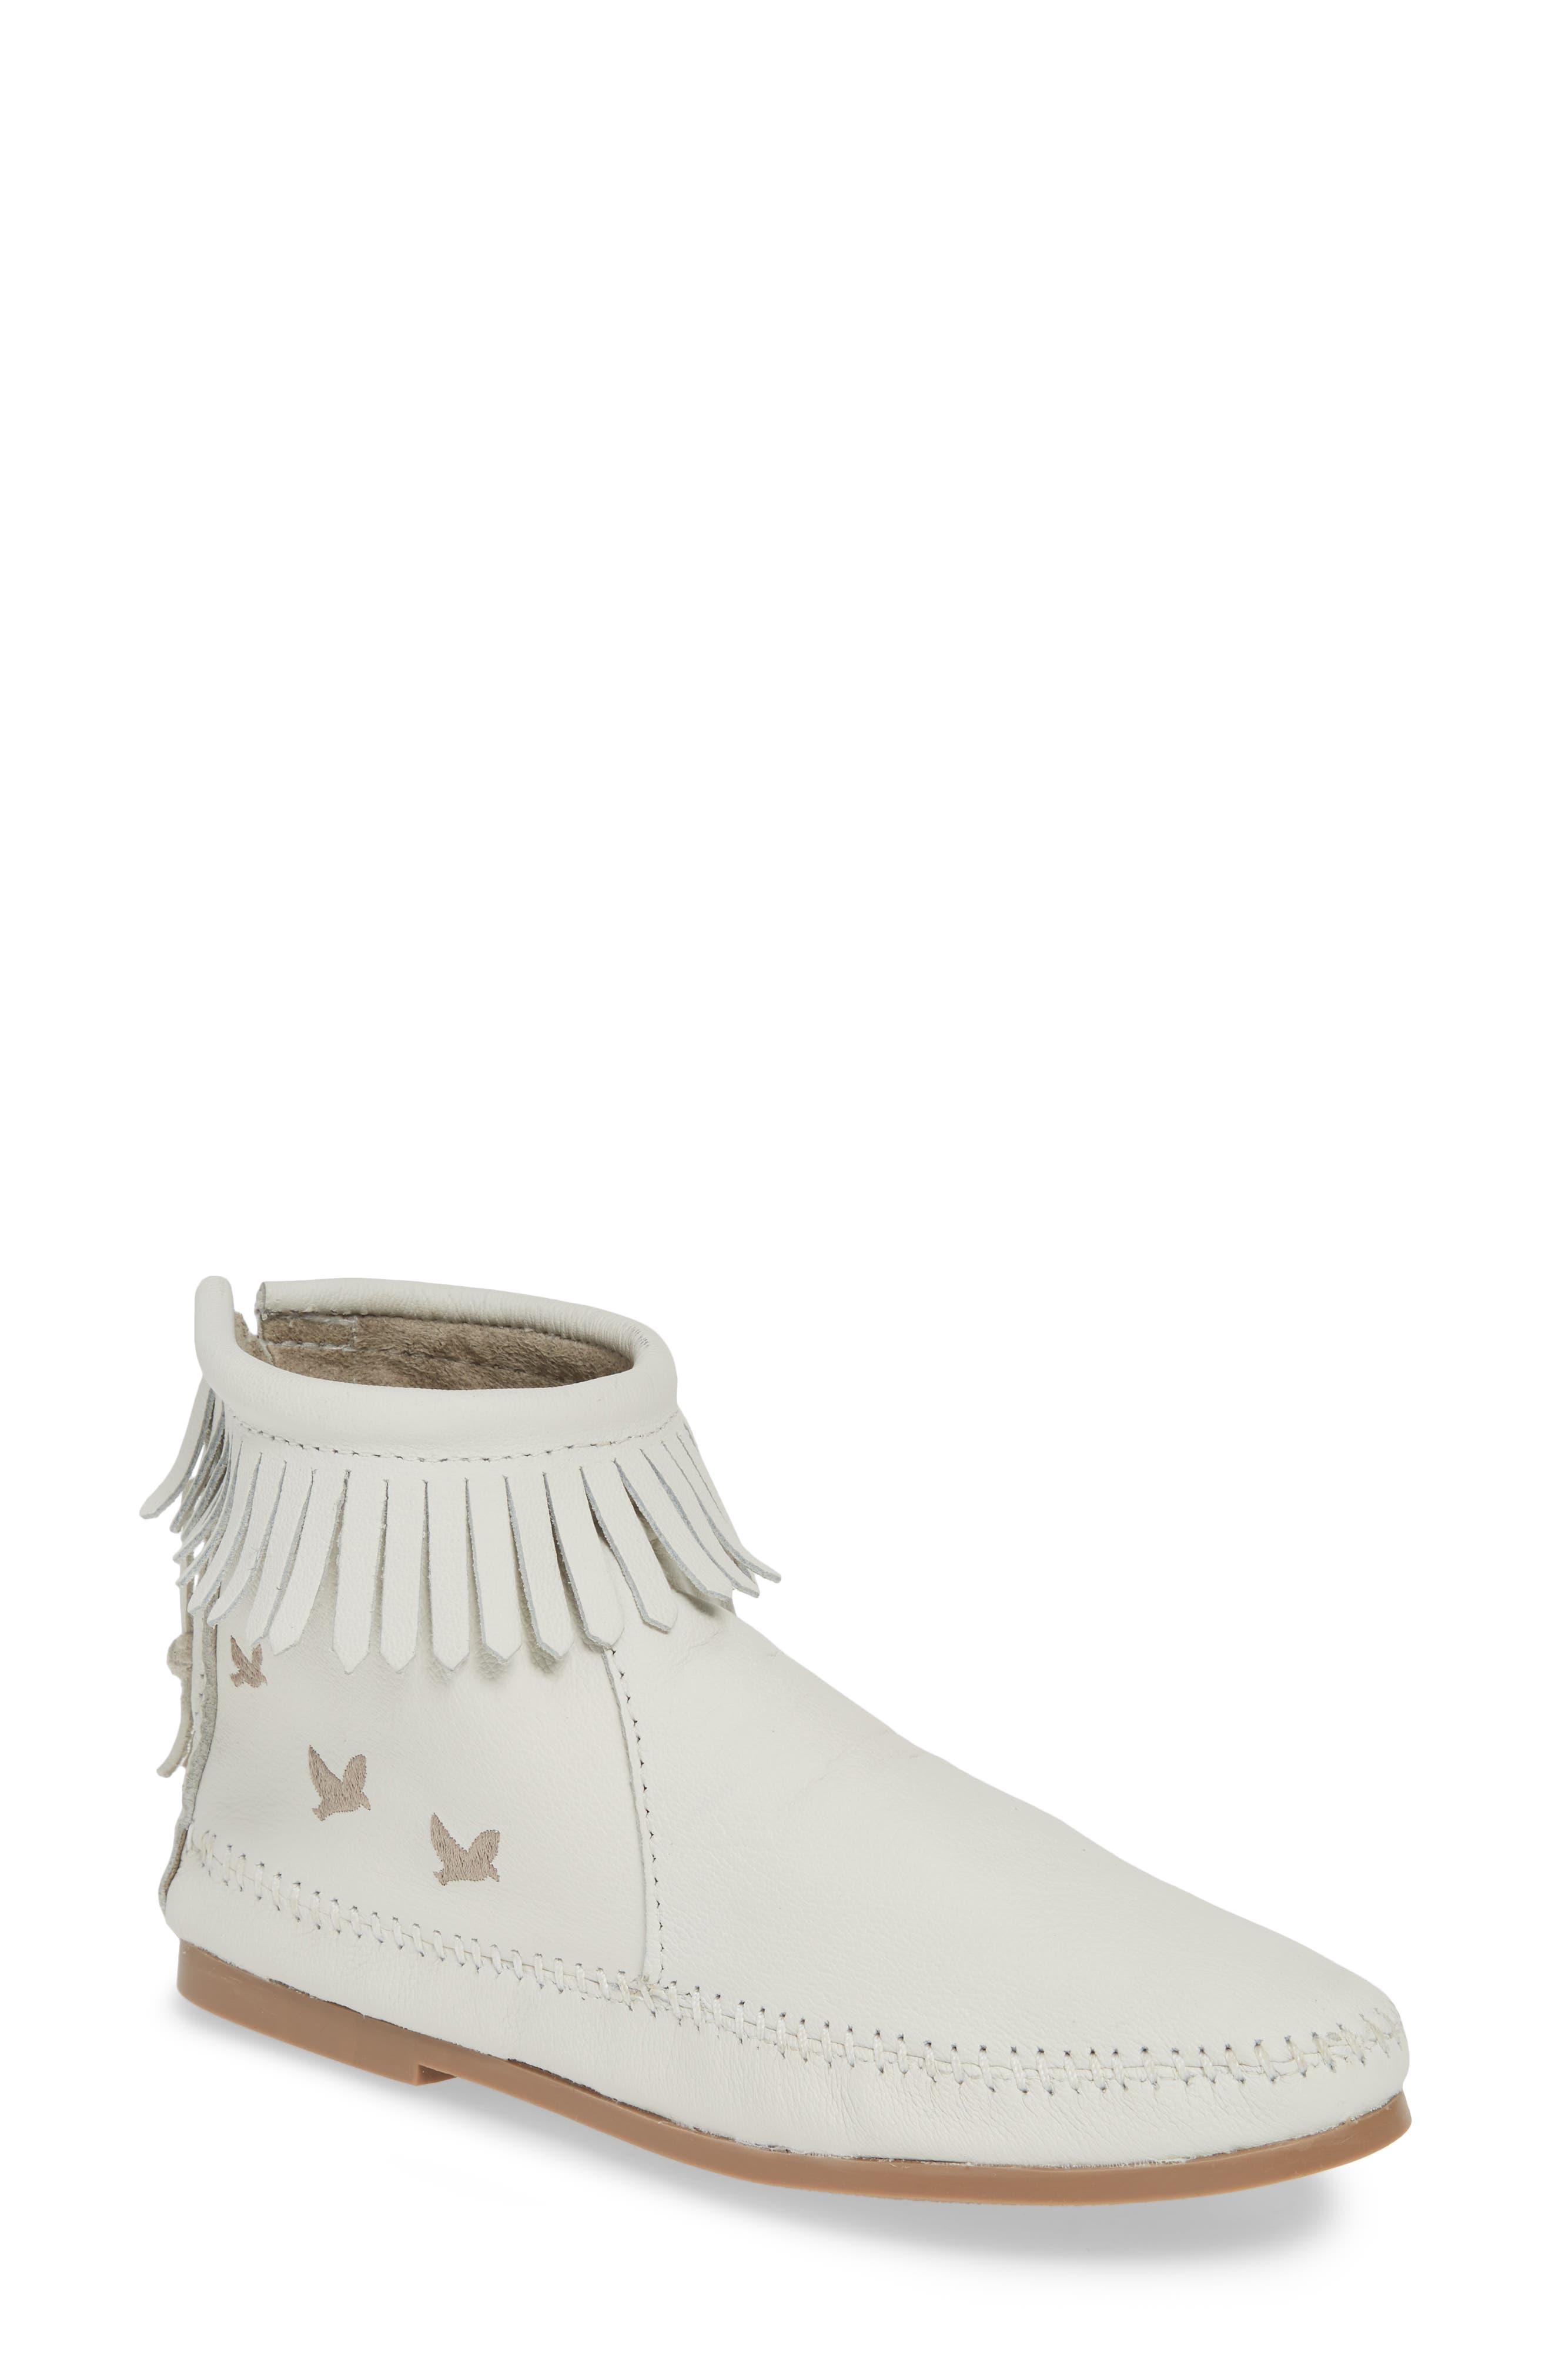 MINNETONKA x Lottie Moss Lauryn Fringe Bootie, Main, color, WHITE LEATHER